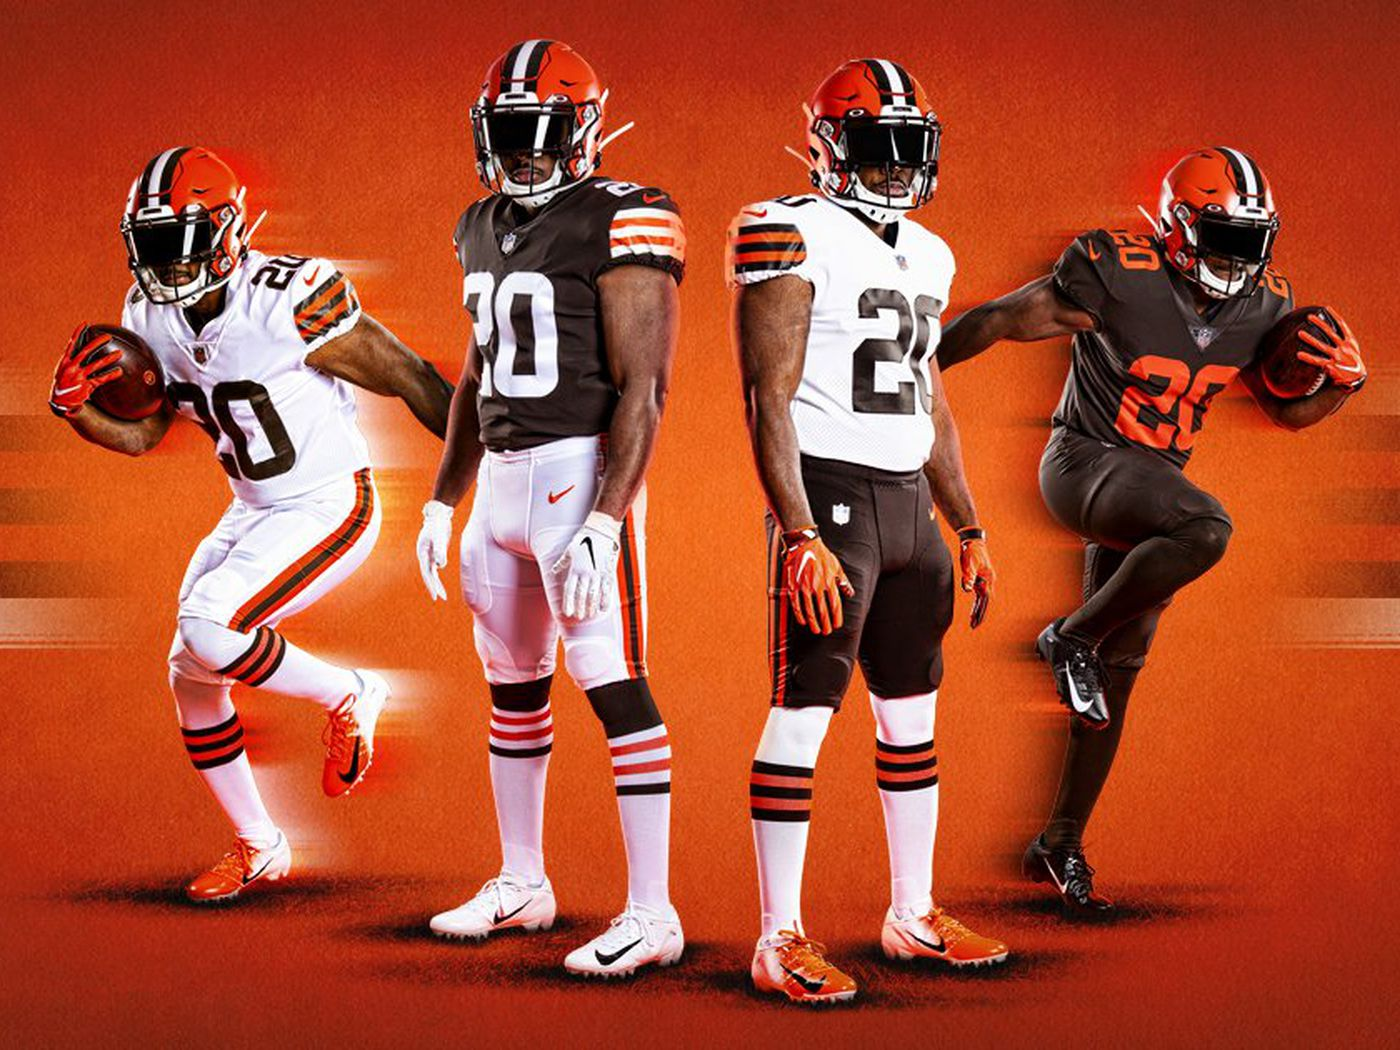 The Browns' new uniforms are a sign they're making good decisions ...